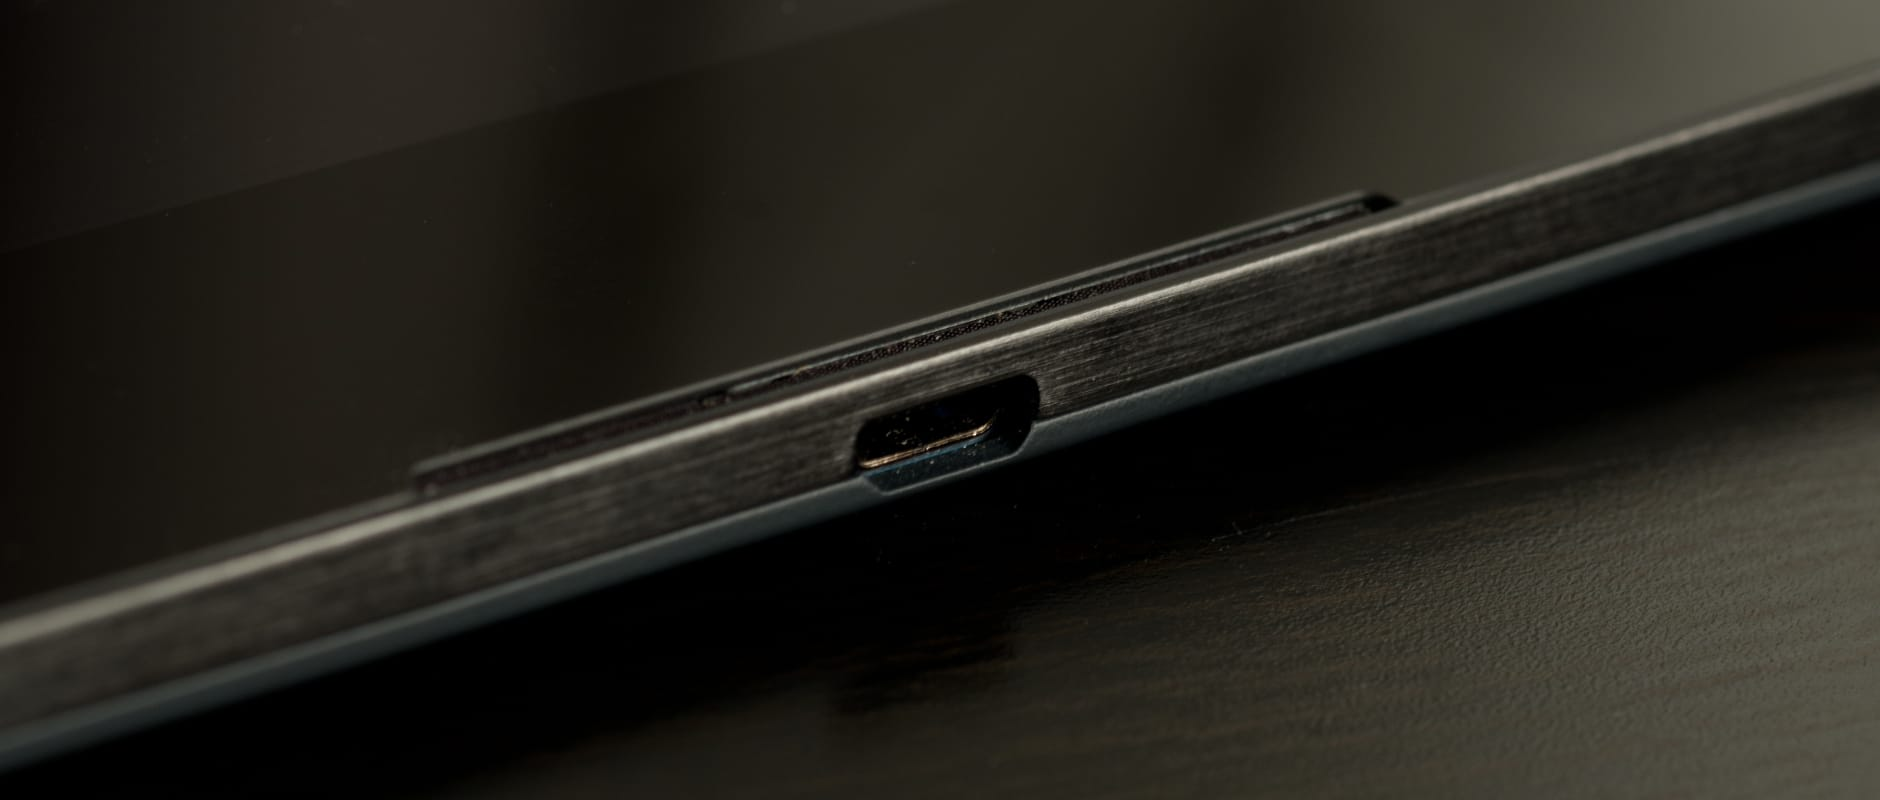 A photo of the Google Nexus 9's microUSB port.